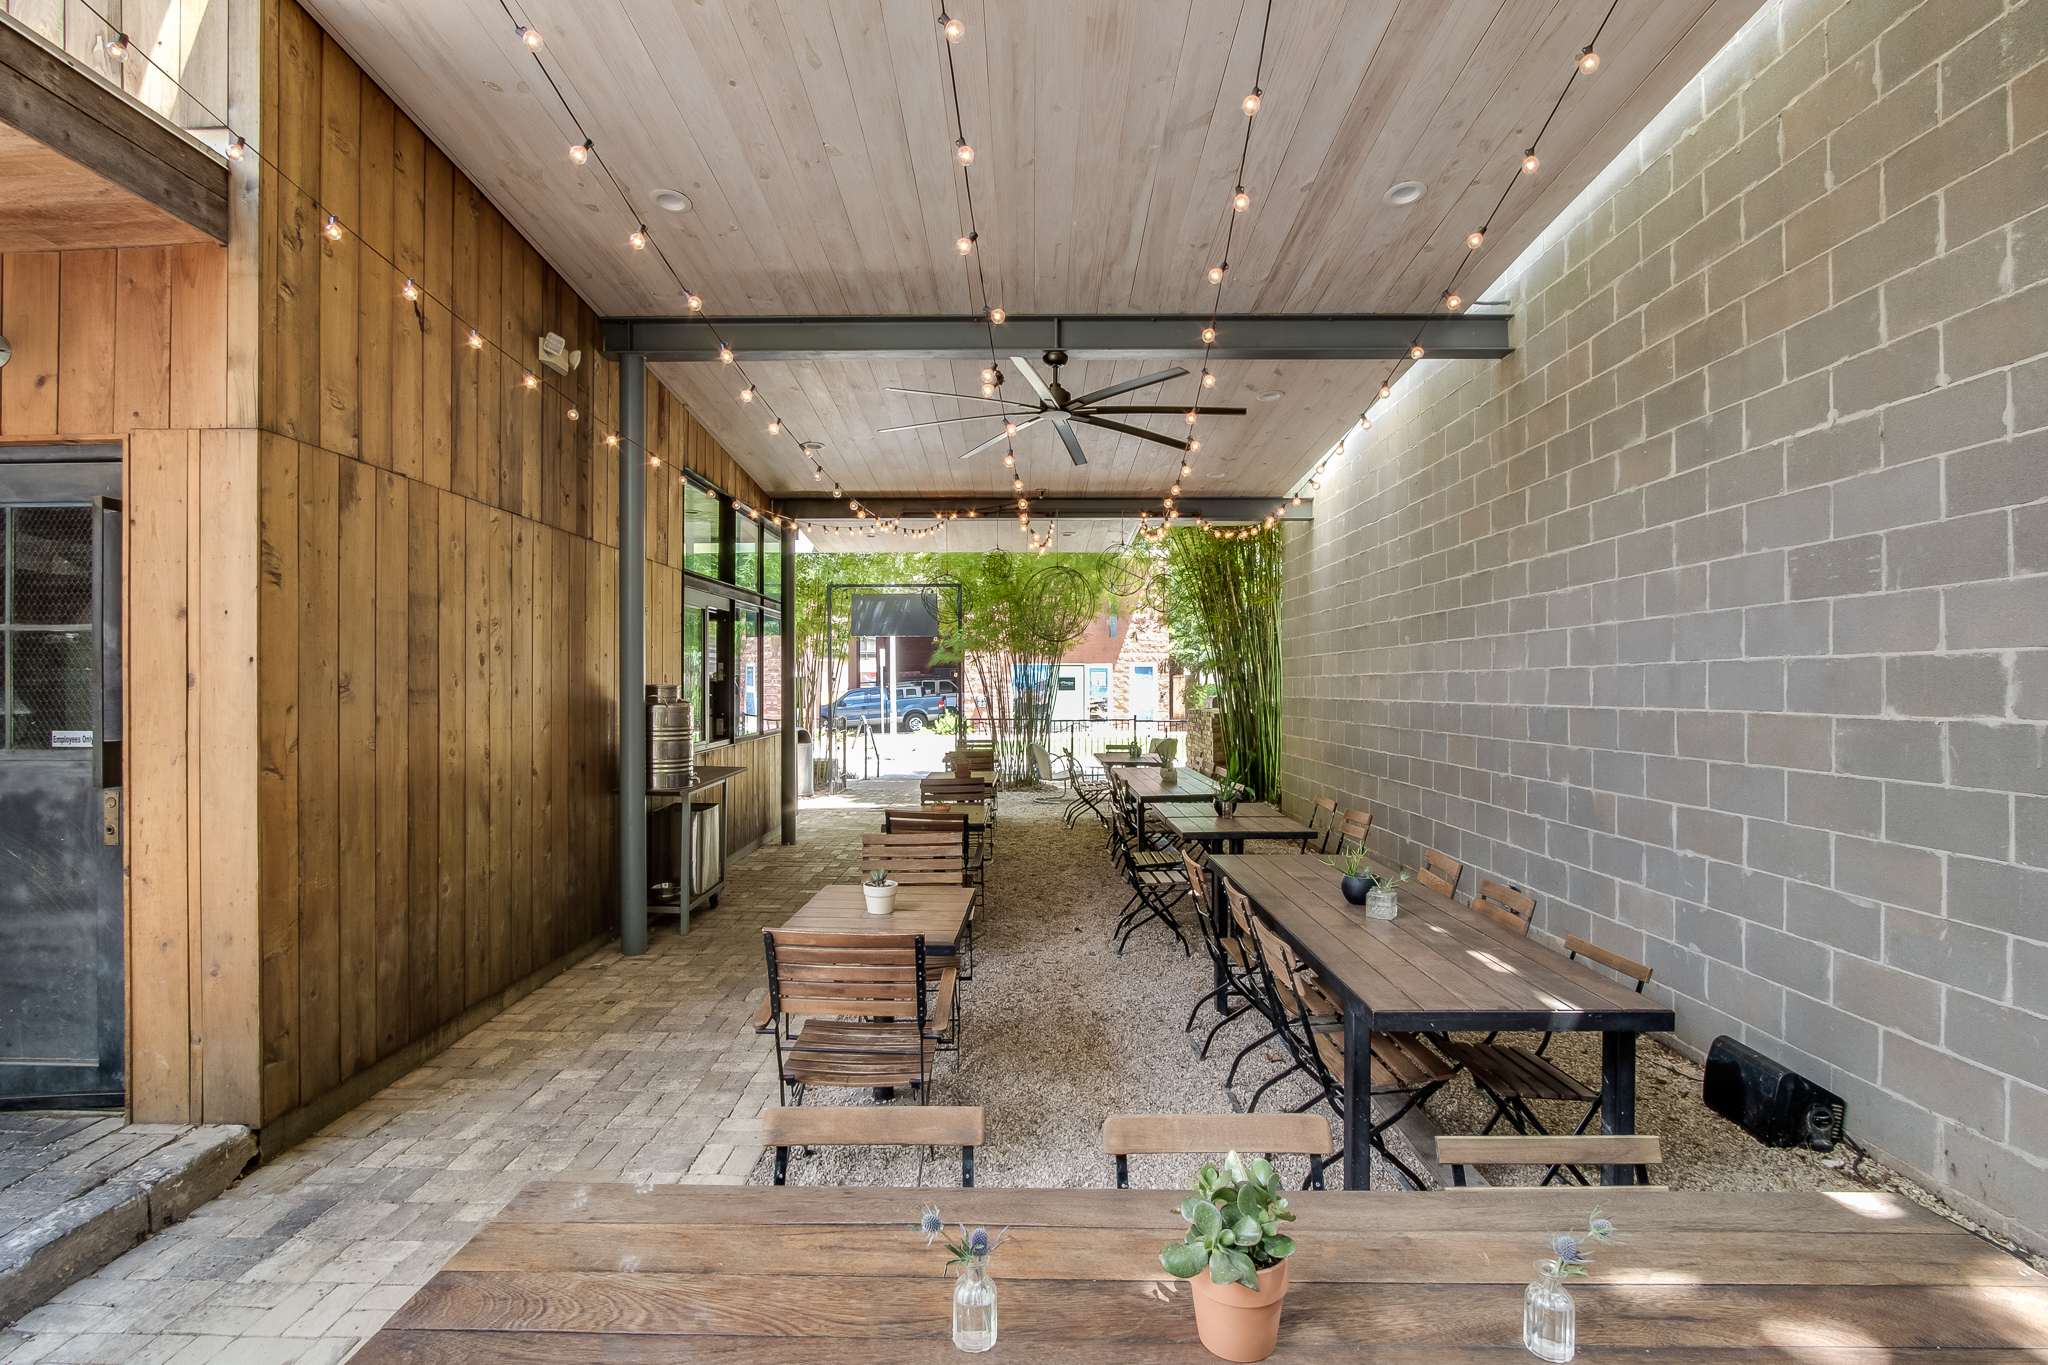 kitchen patio 2.jpg